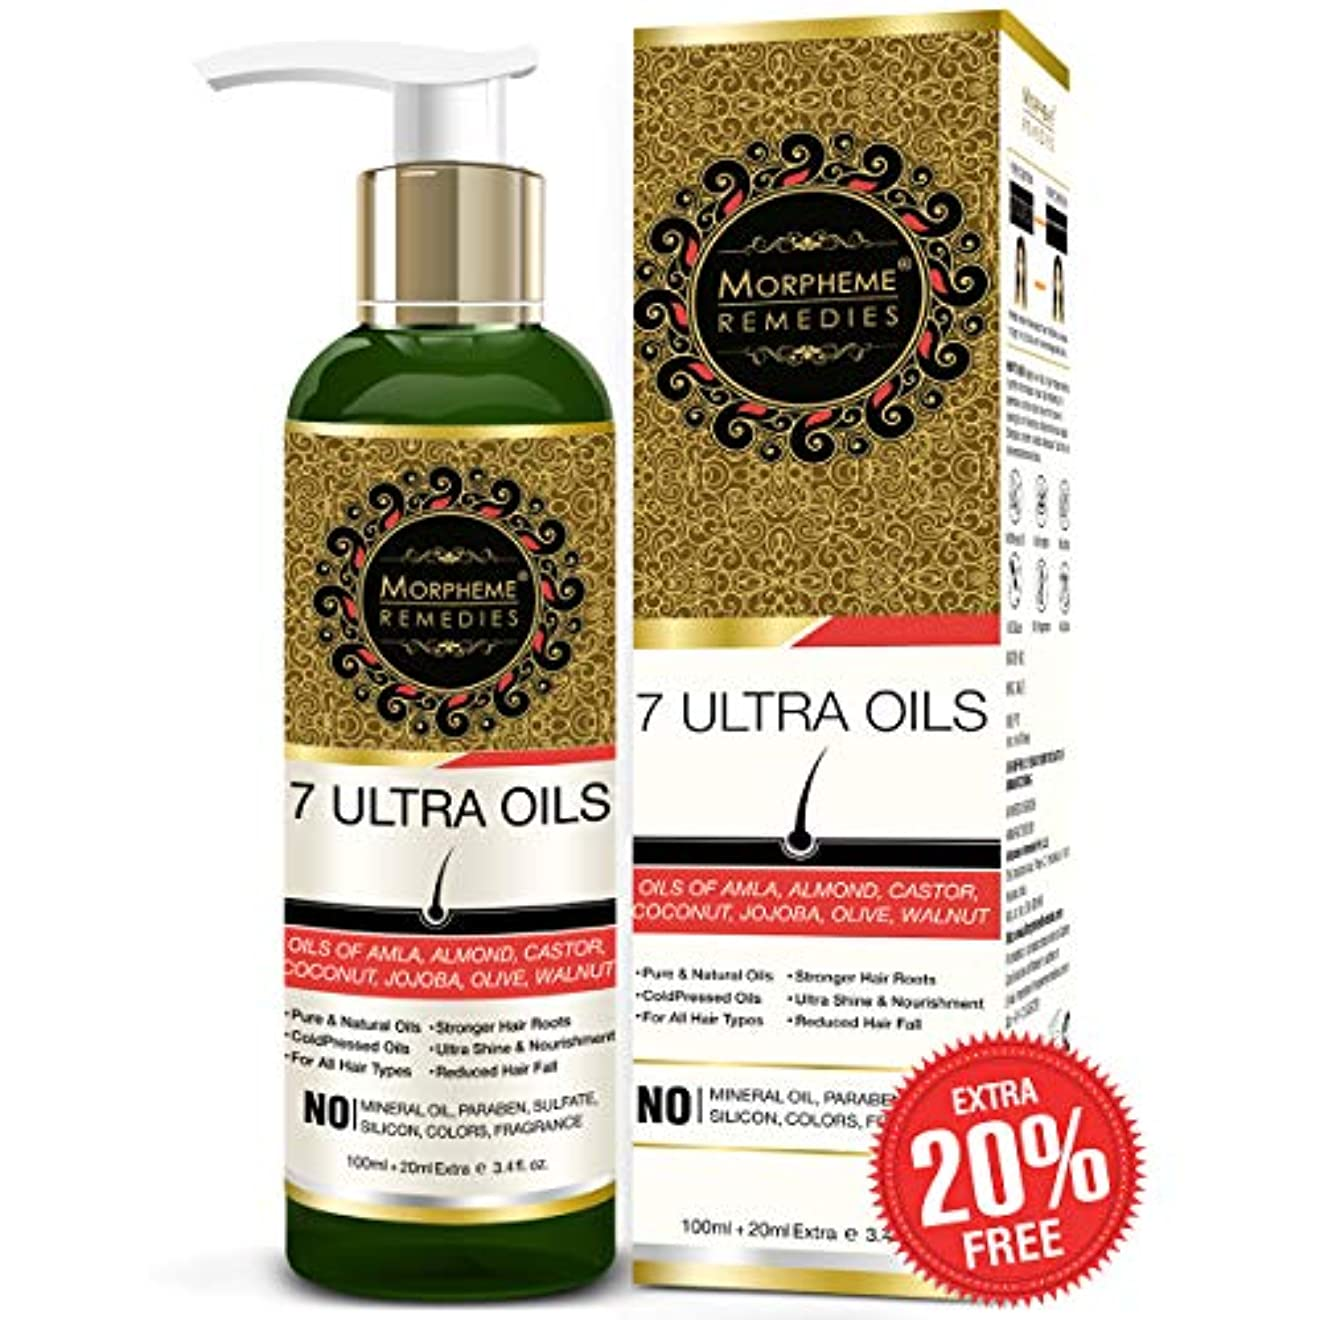 キロメートル悪名高い命令的Morpheme Remedies 7 Ultra Hair Oil - (Almond, Castor, Jojoba, Coconut, Olive, Walnut, Amla Oils) - 120 ml